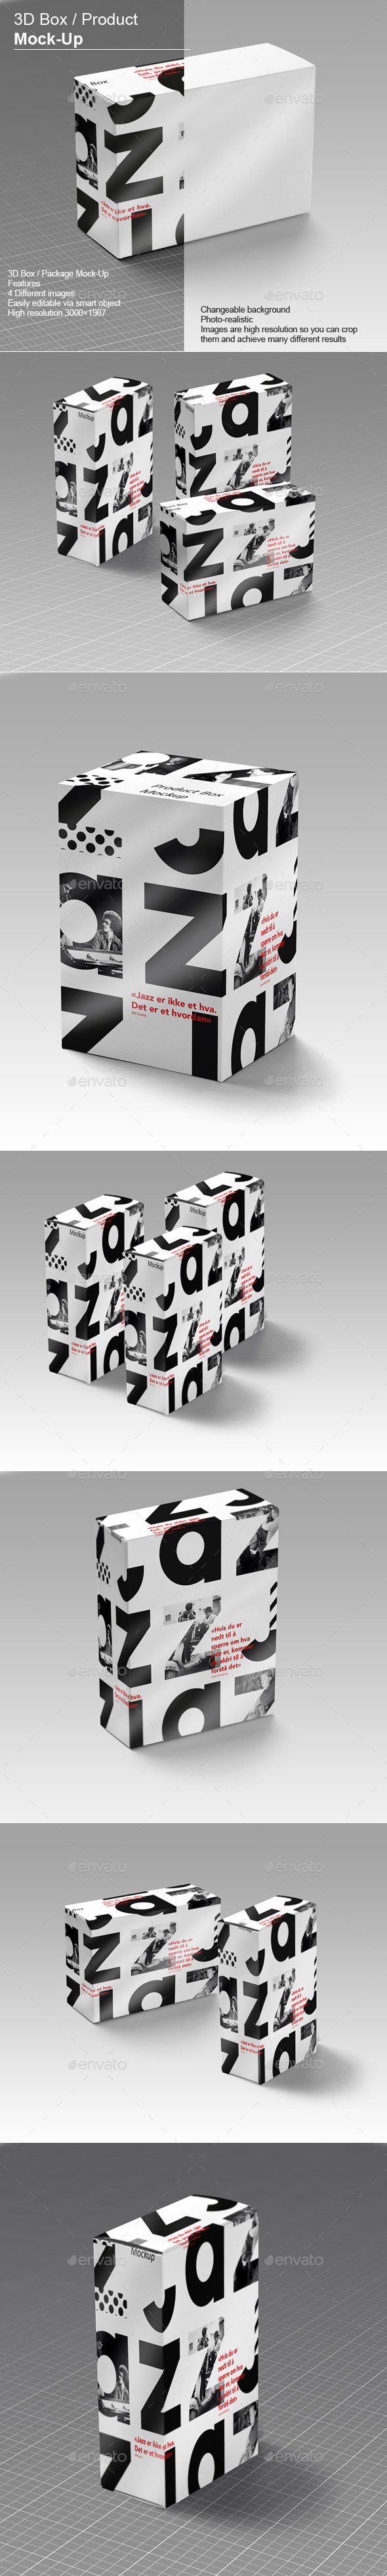 GraphicRiver 3D Box Product Mock-Up v.2 10932382